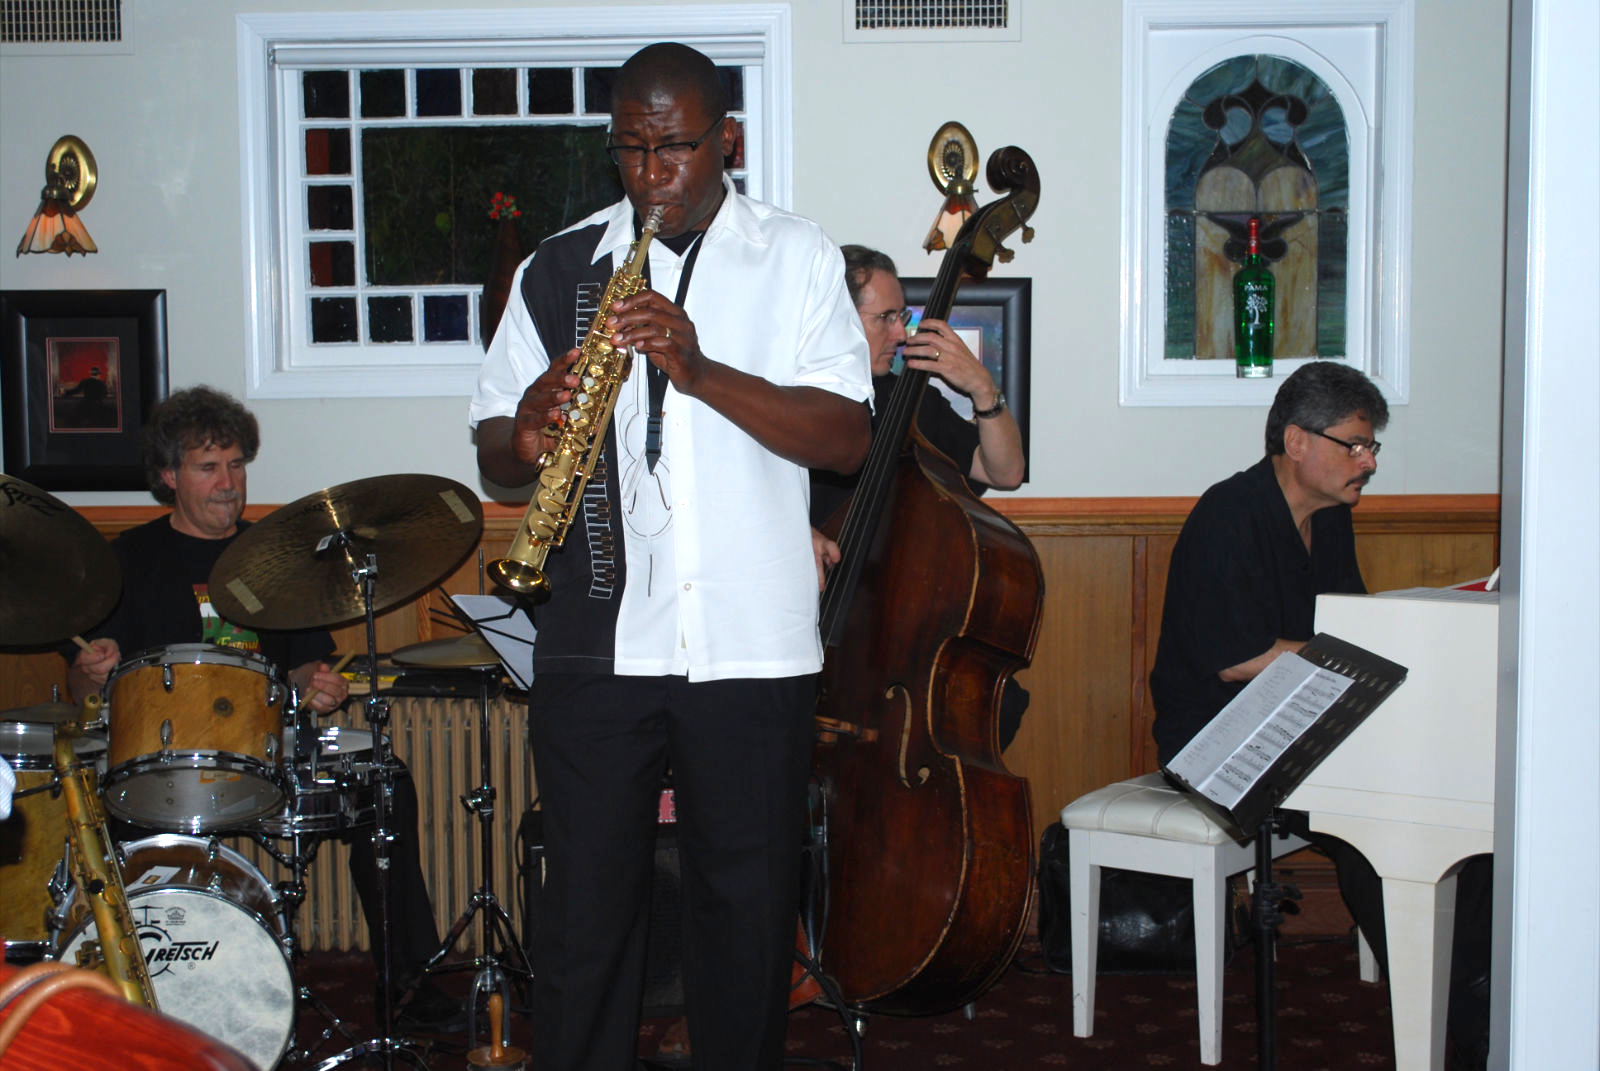 Todd Williams with the Skye Jazz Trio